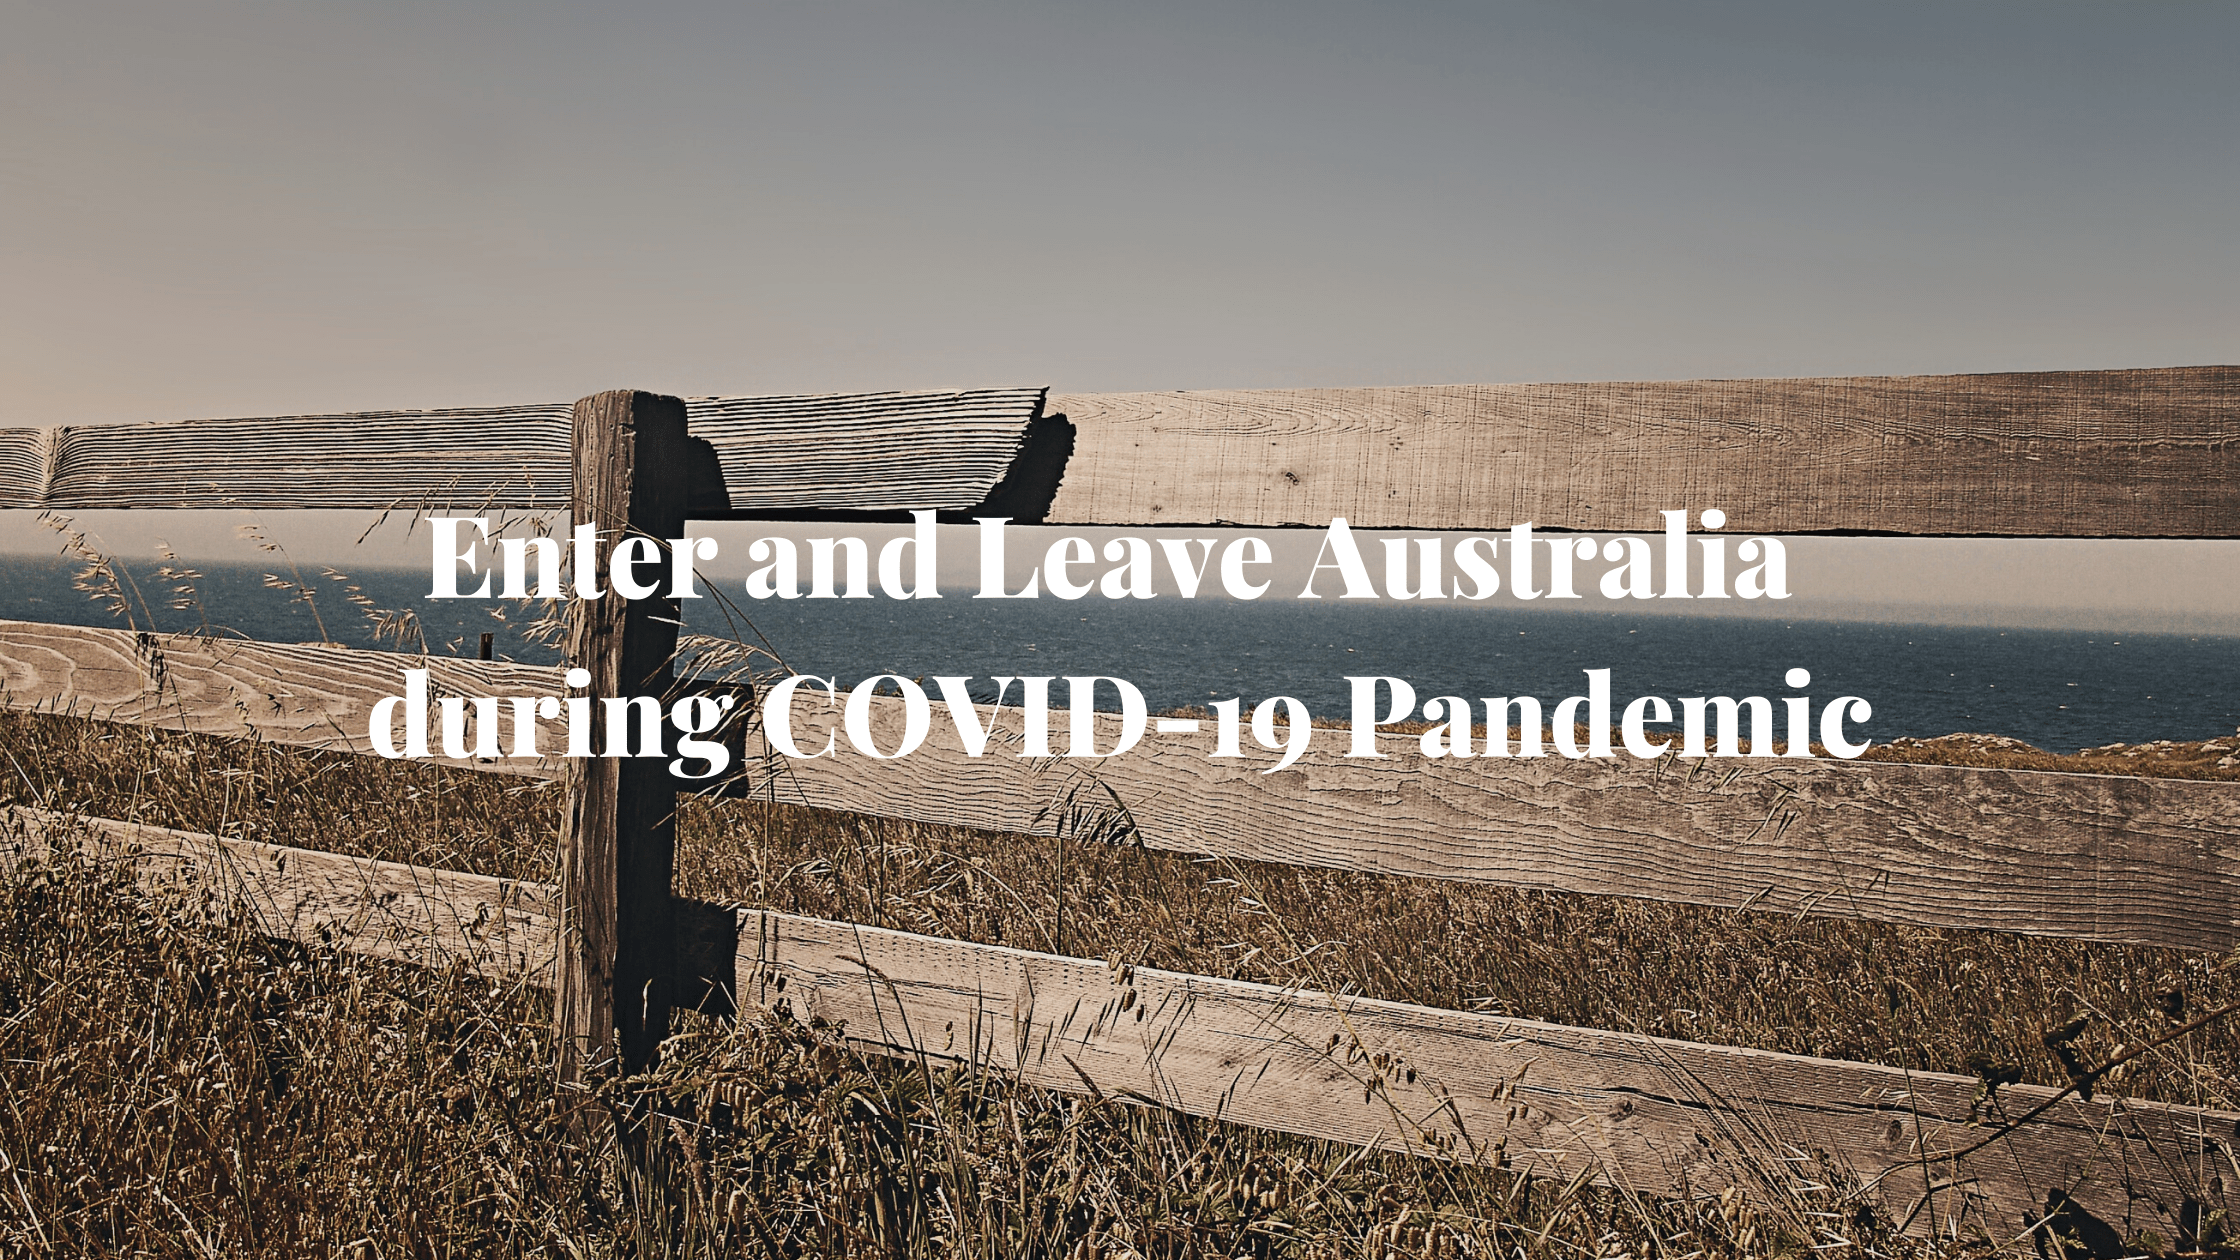 Enter and Leave Australia during COVID-19 Pandemic 3